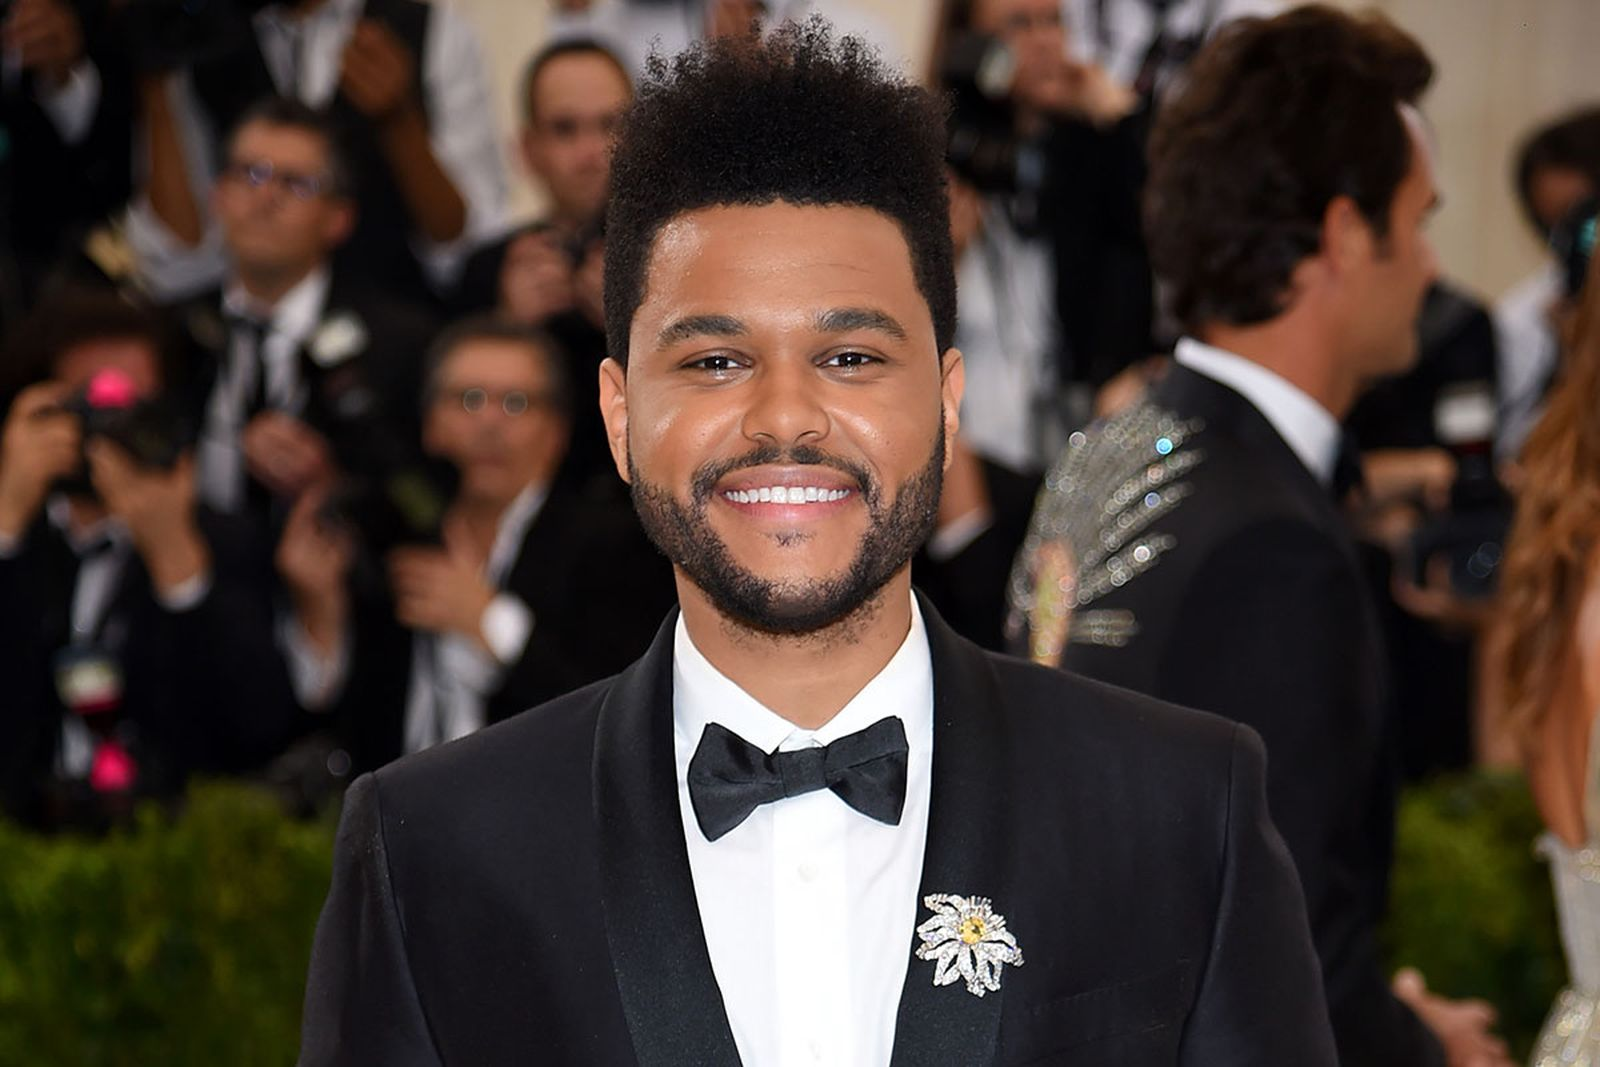 The Weeknd at the Met Ball 2017